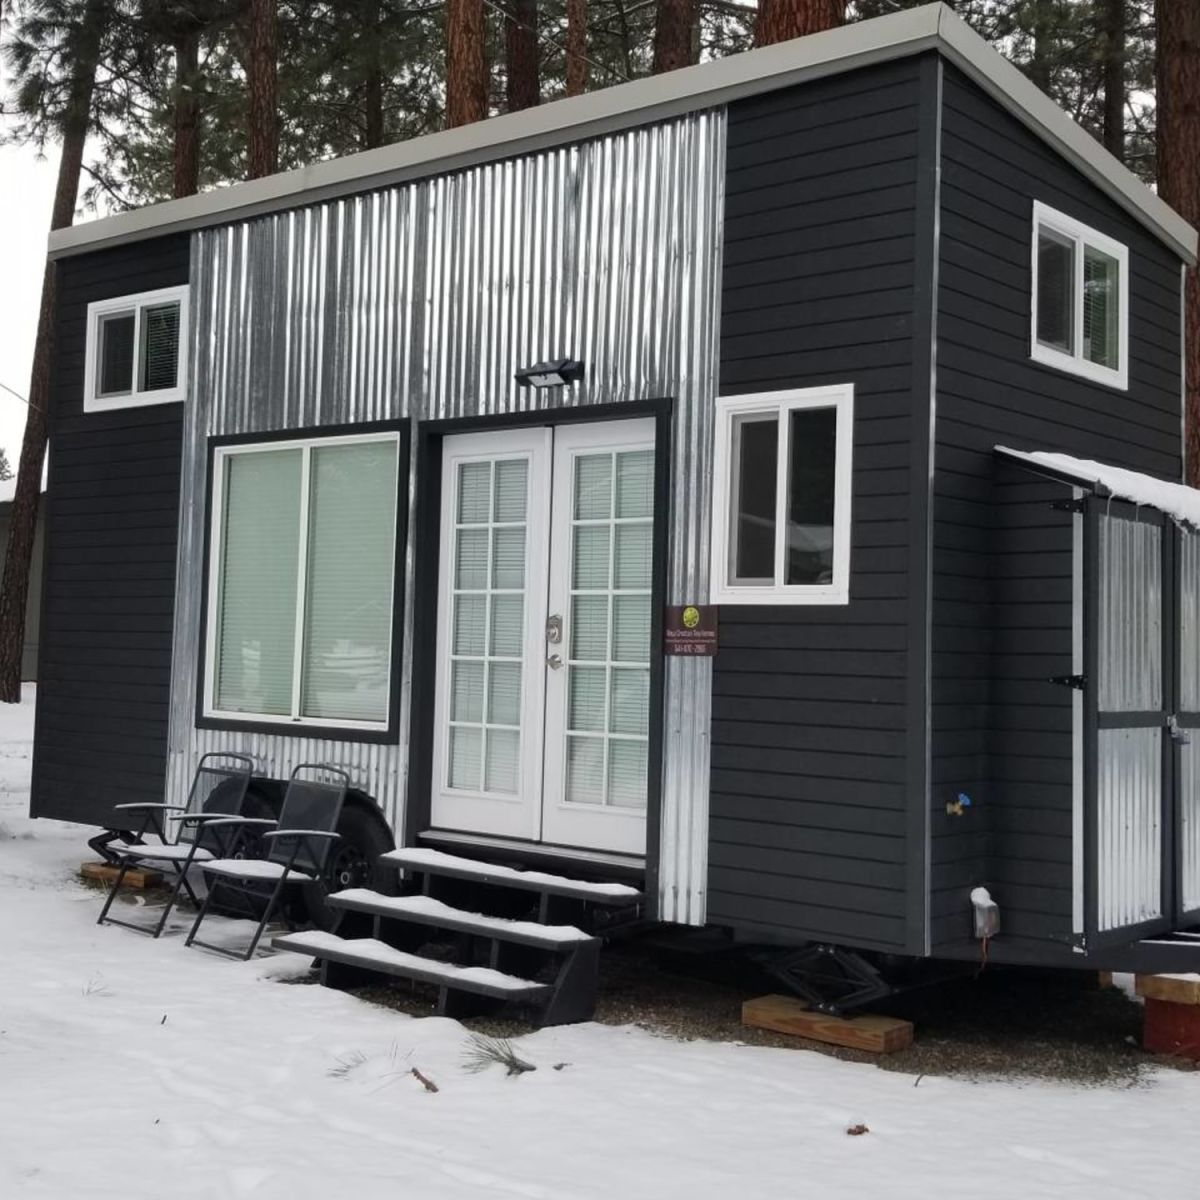 Milagro Custom Tiny House - New Construction - Customize Your Interior -  Tiny House for Rent in Sisters, Oregon - Tiny House Listings